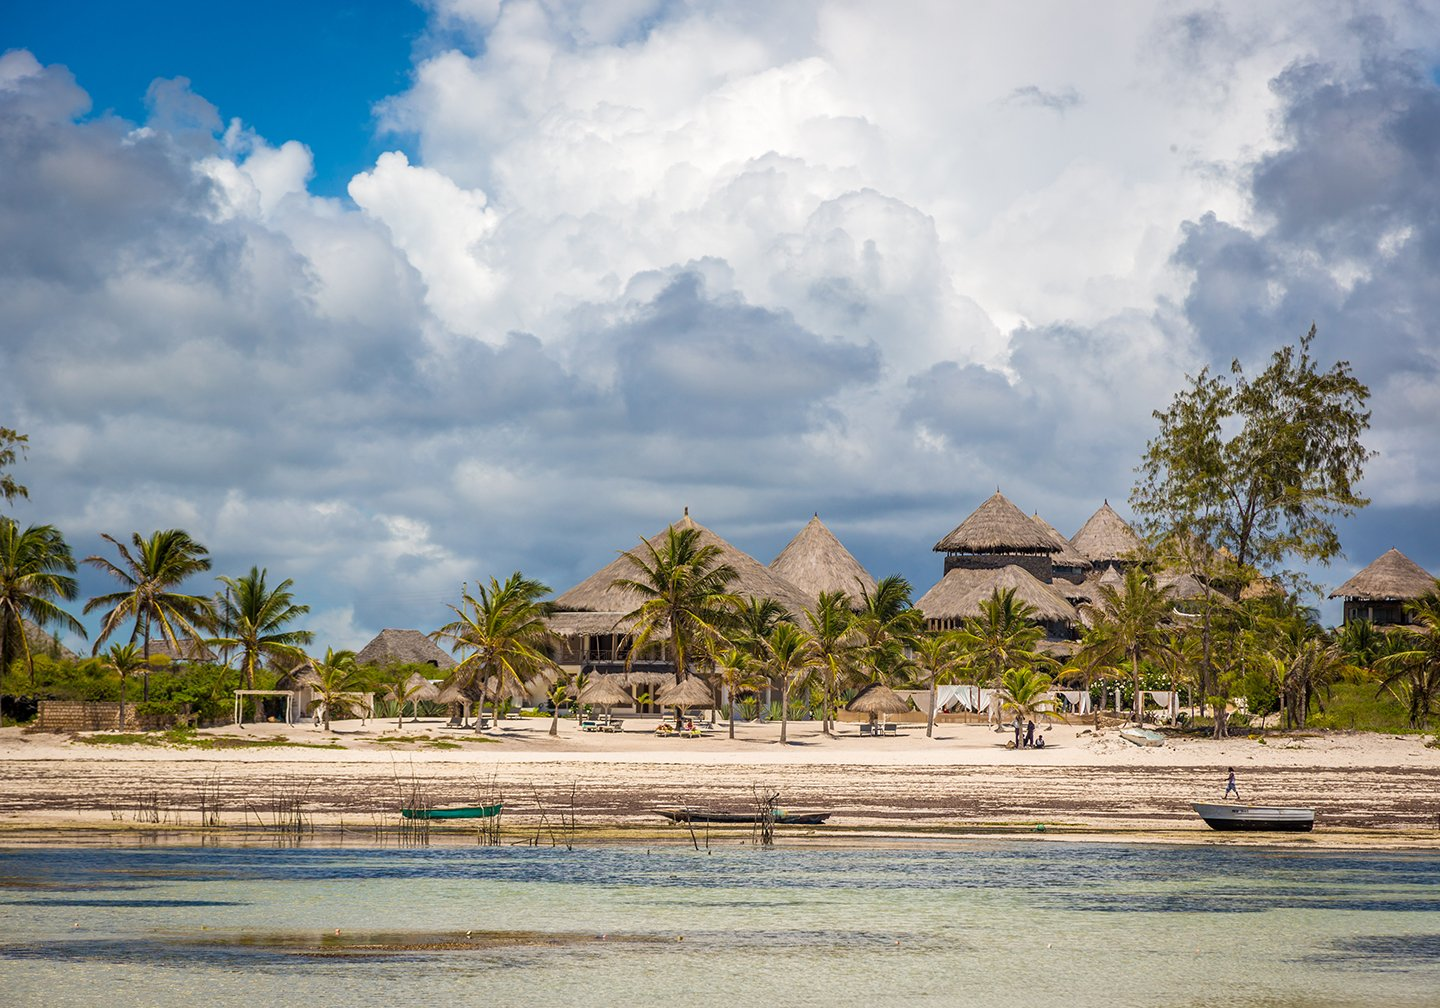 A view taken from the sea of traditional huts in Watamu, Kenya. There is shallow, clear water in the foreground and cloudy sky in the distance.